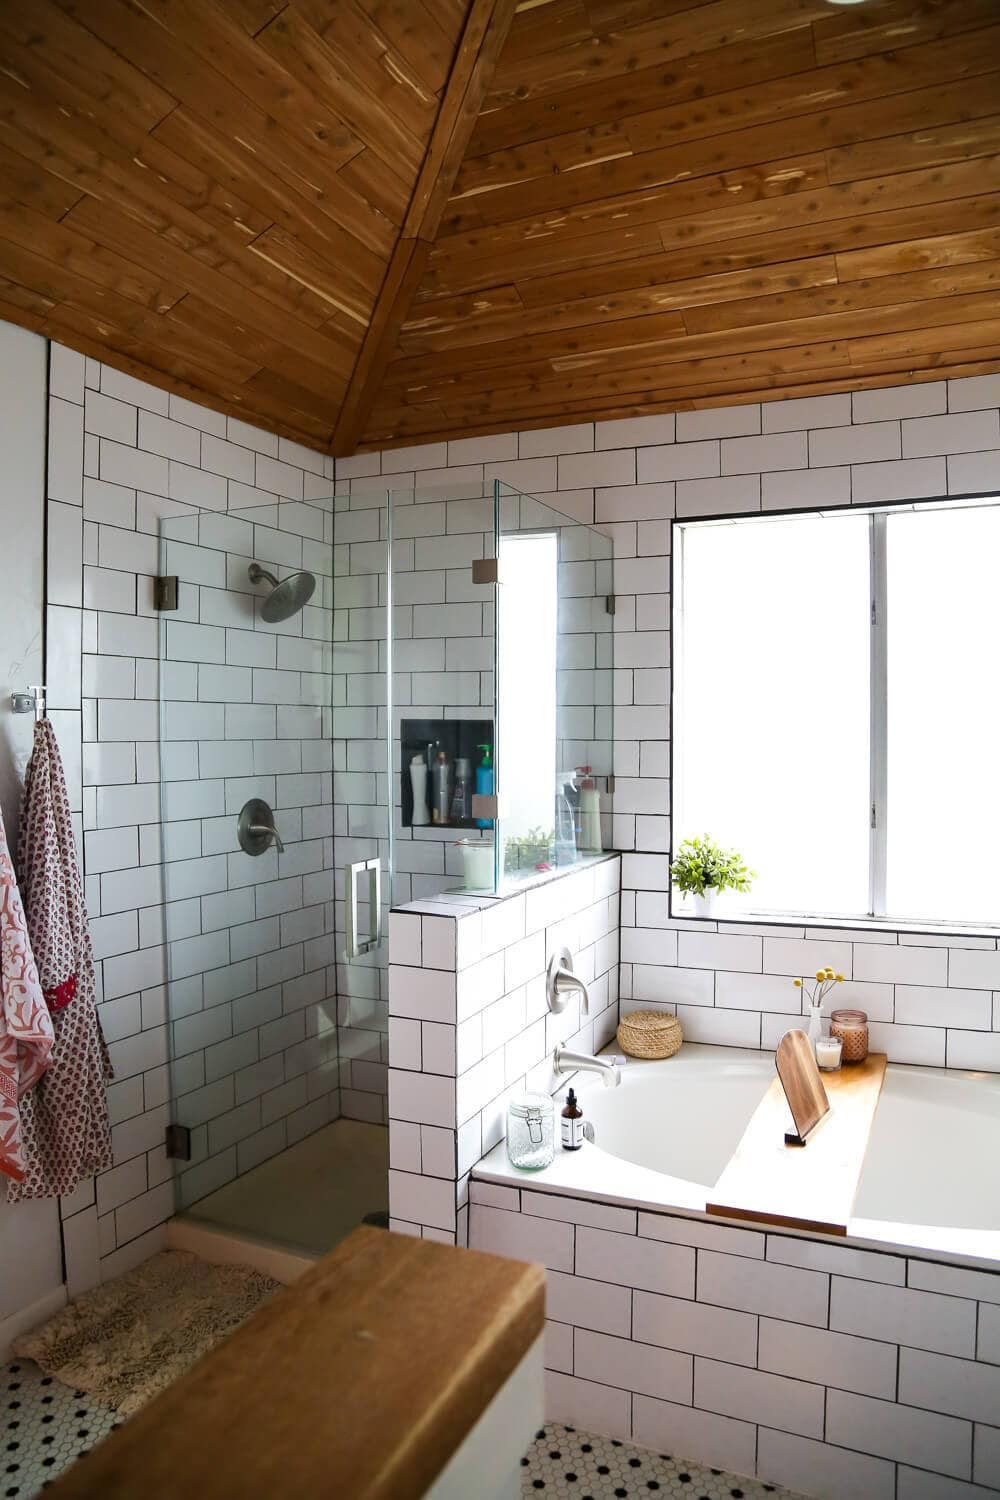 Our diy budget bathroom renovation love renovations for Affordable bathroom renovations